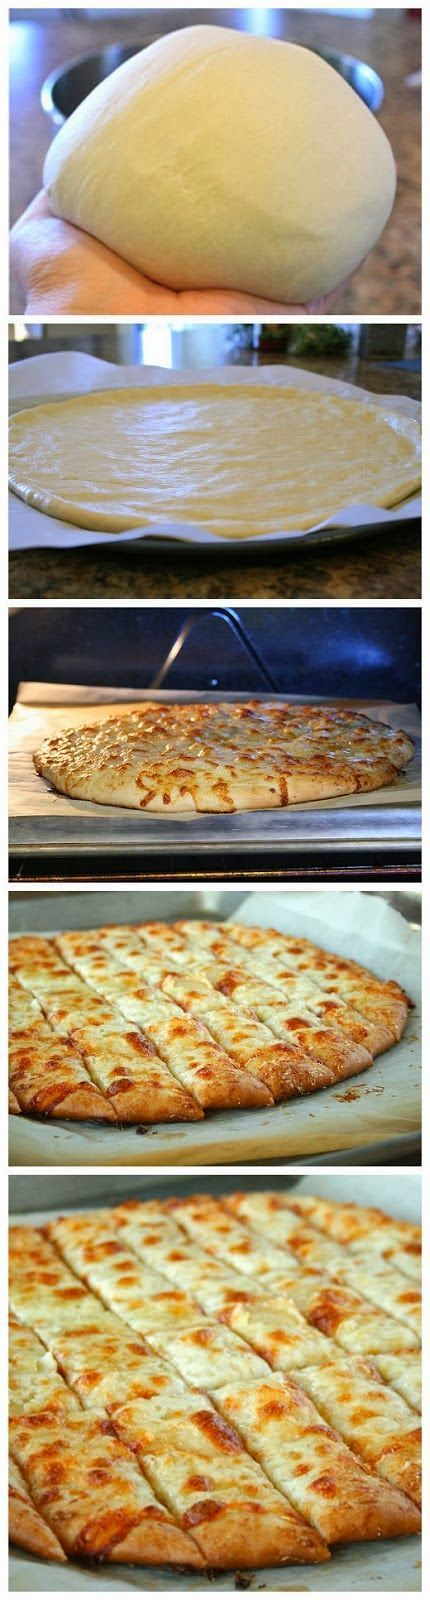 Fail-Proof Pizza Dough just like in restaurants! Turn it into pizza or garlic bread sticks.